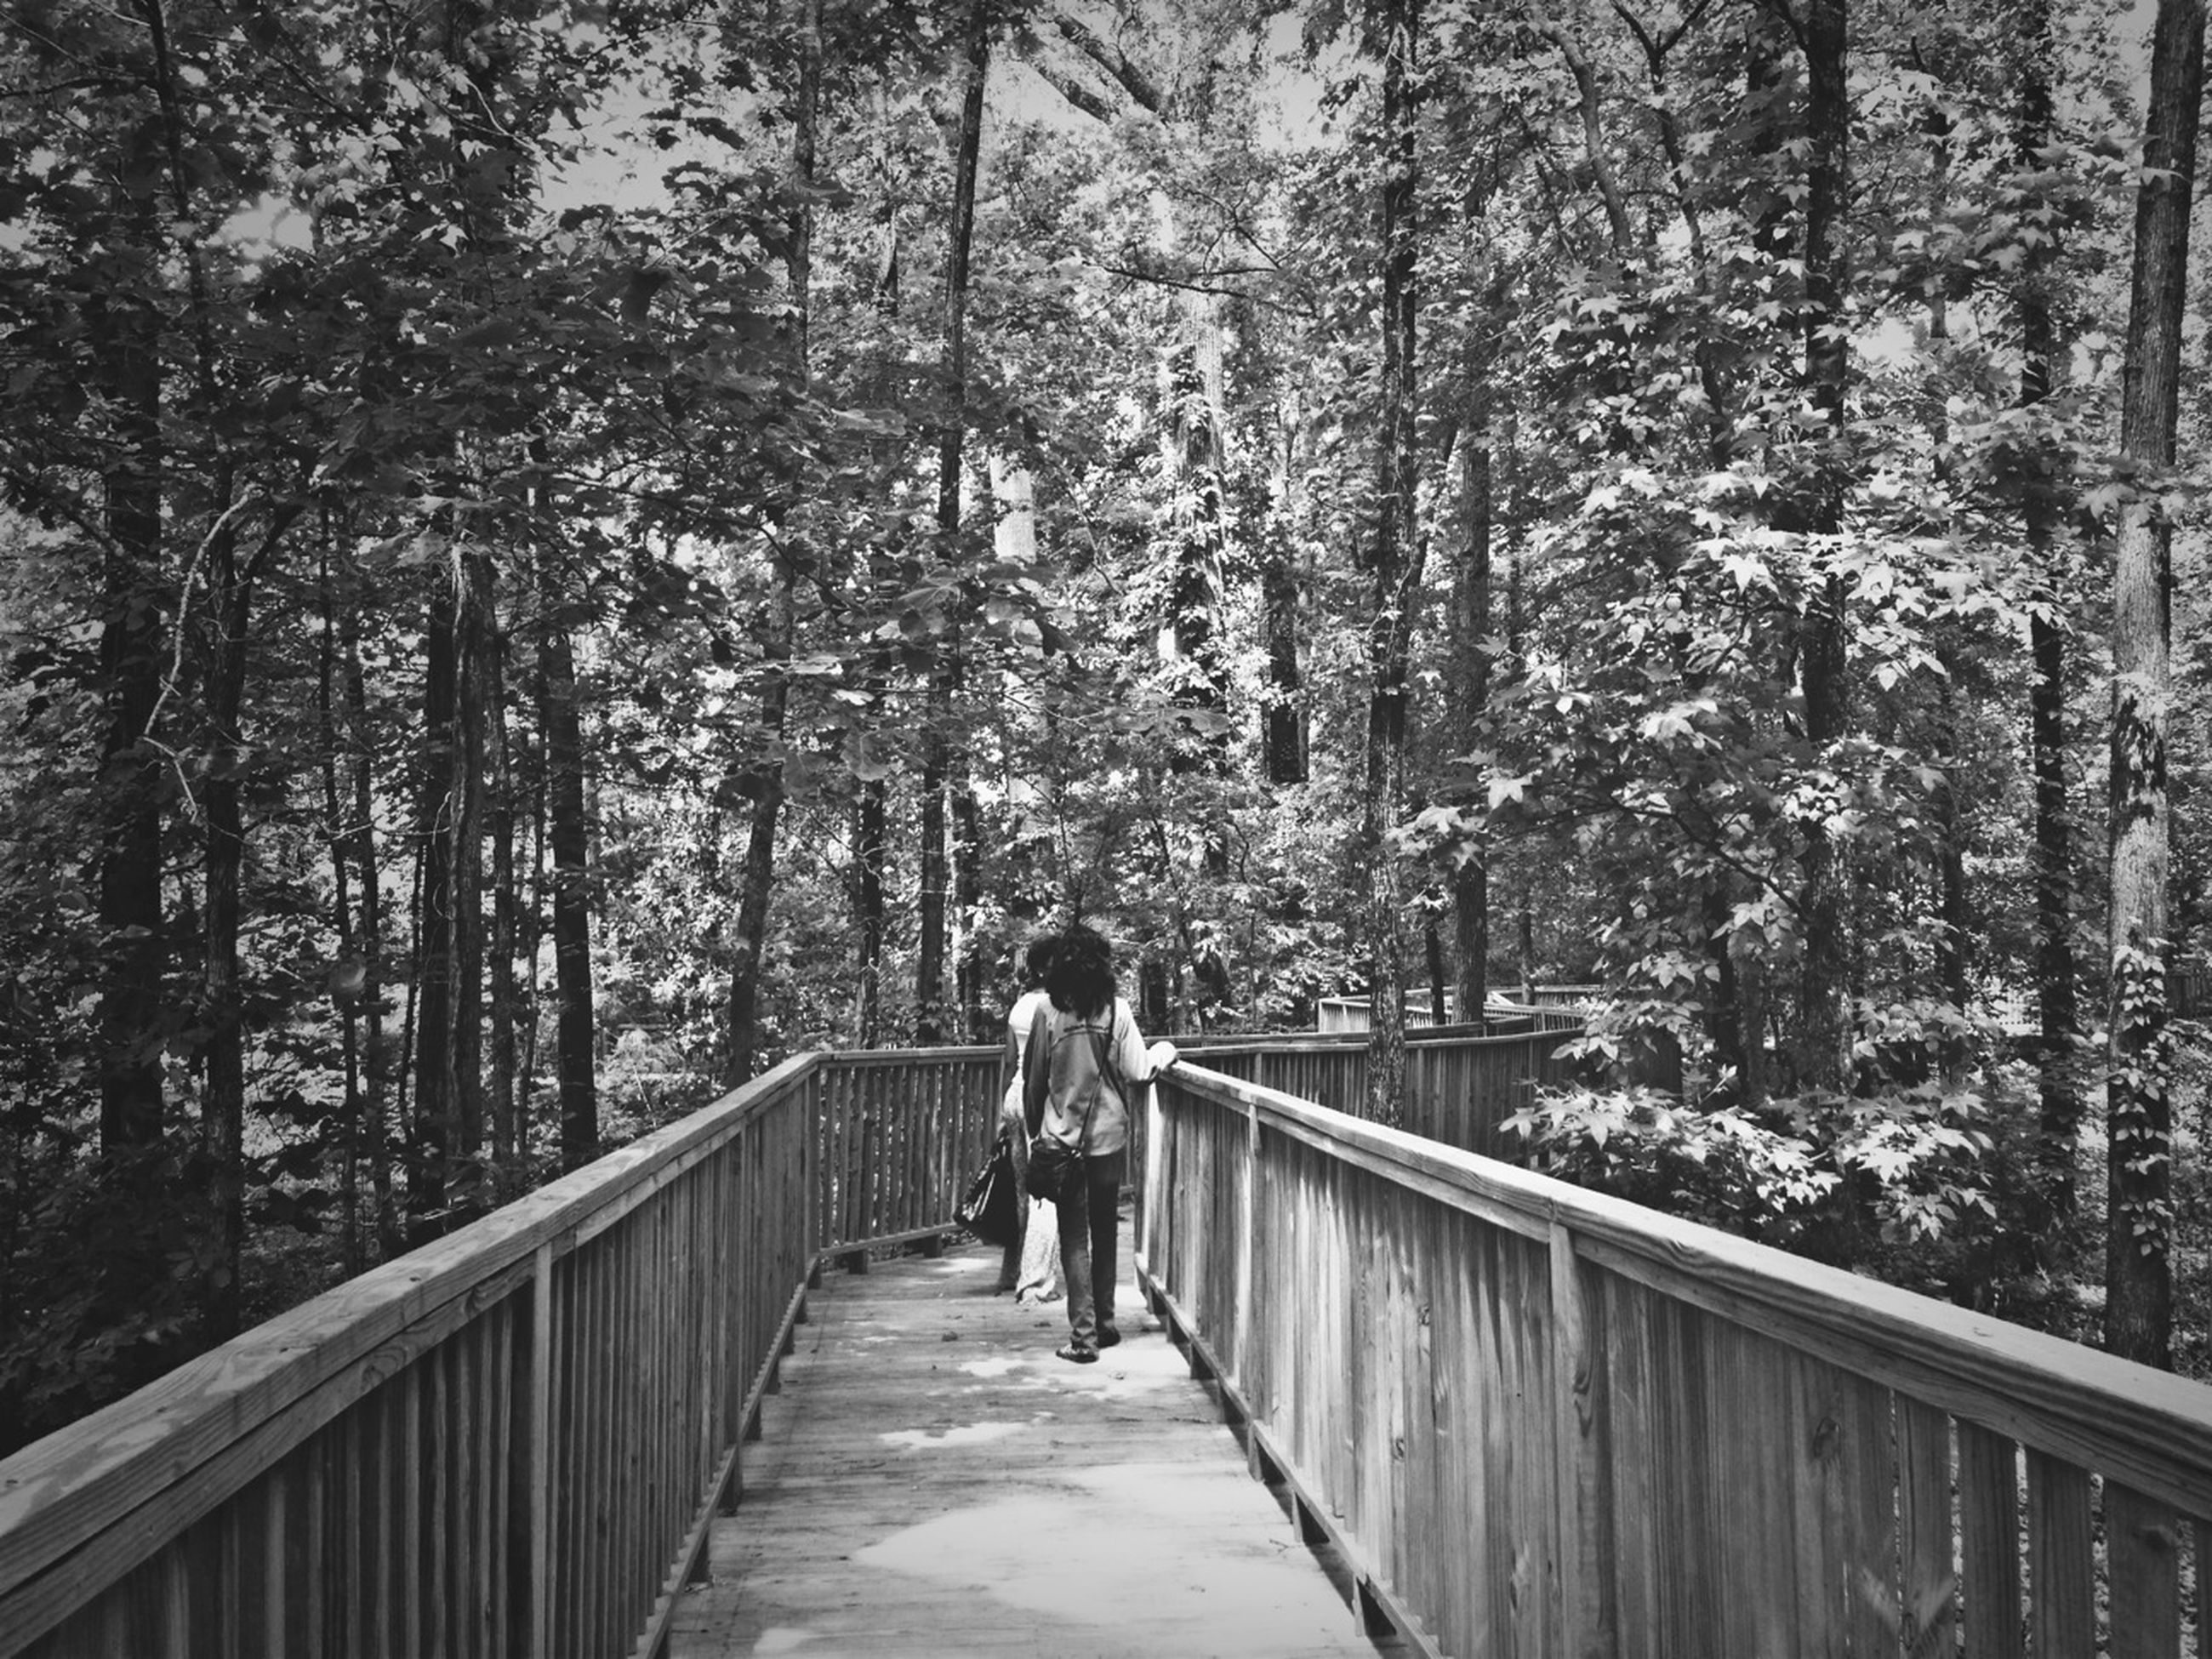 lifestyles, tree, rear view, full length, leisure activity, railing, togetherness, walking, men, bonding, the way forward, love, person, casual clothing, girls, childhood, footpath